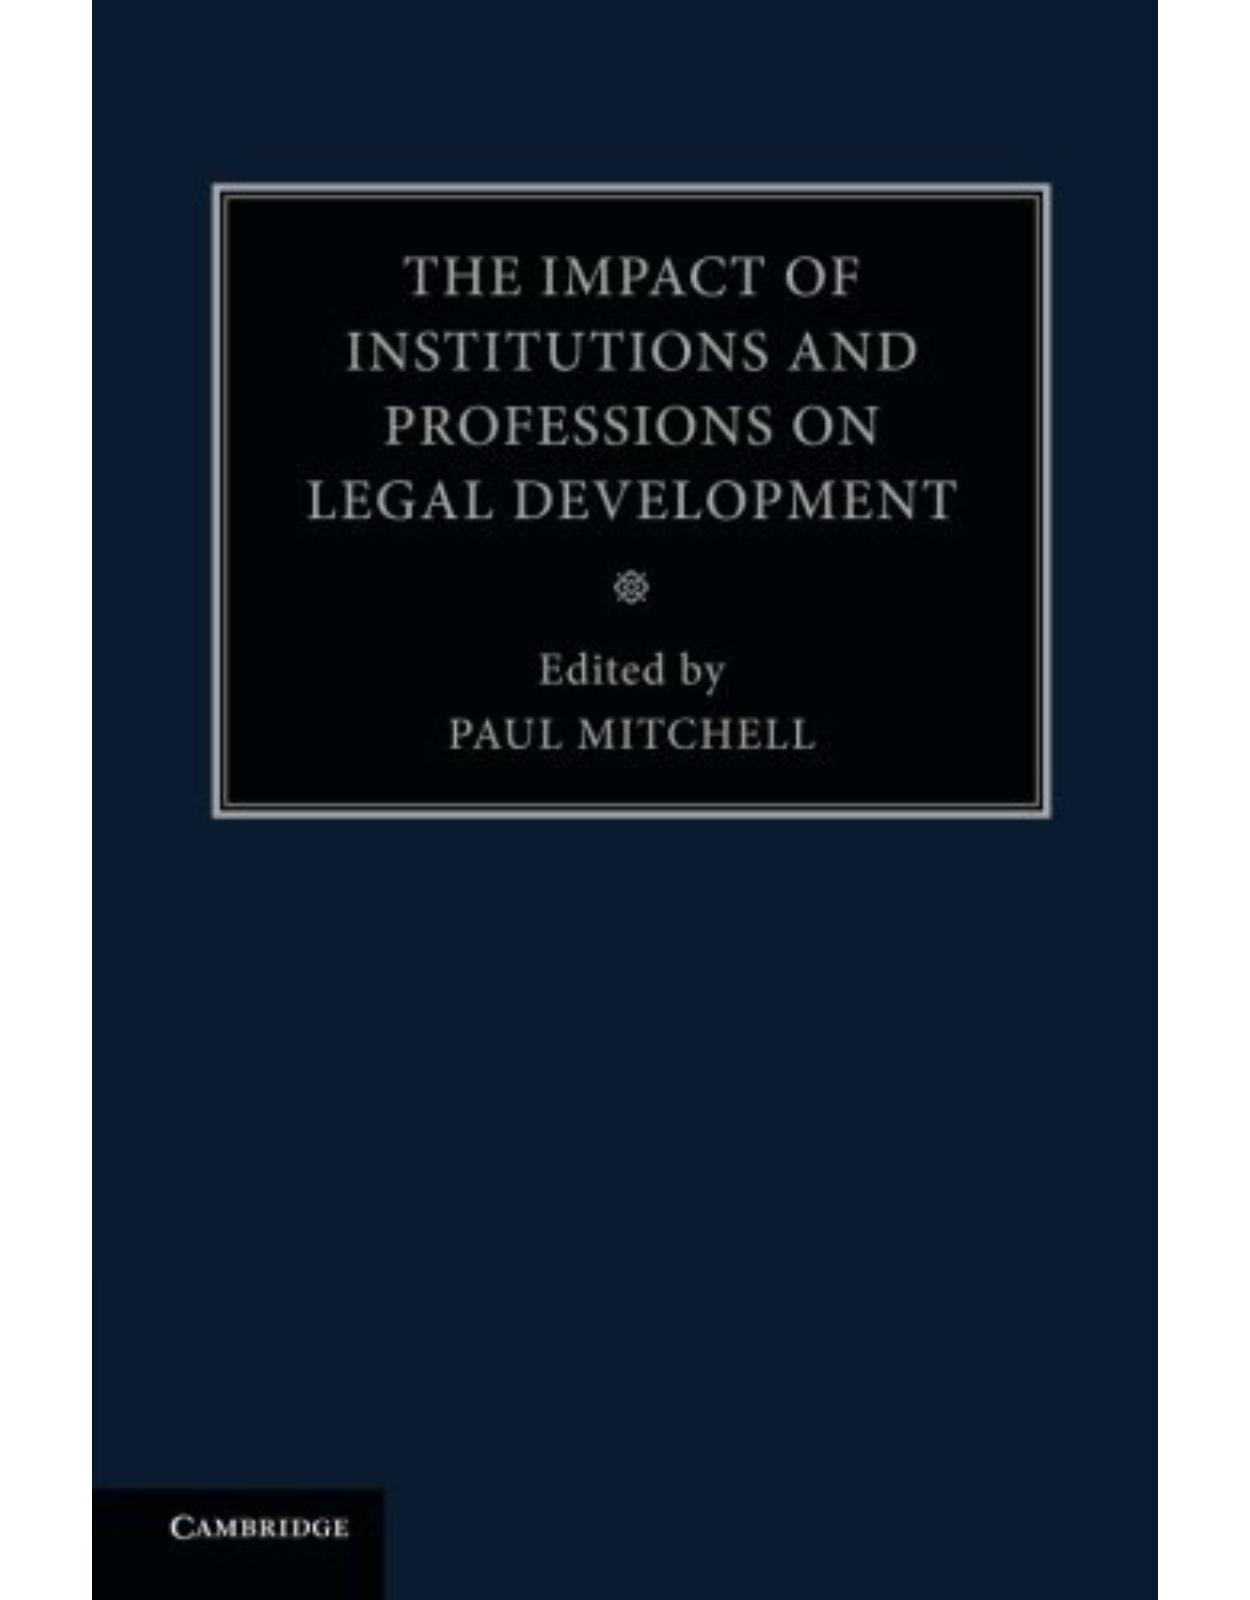 The Impact of Institutions and Professions on Legal Development: Volume 8